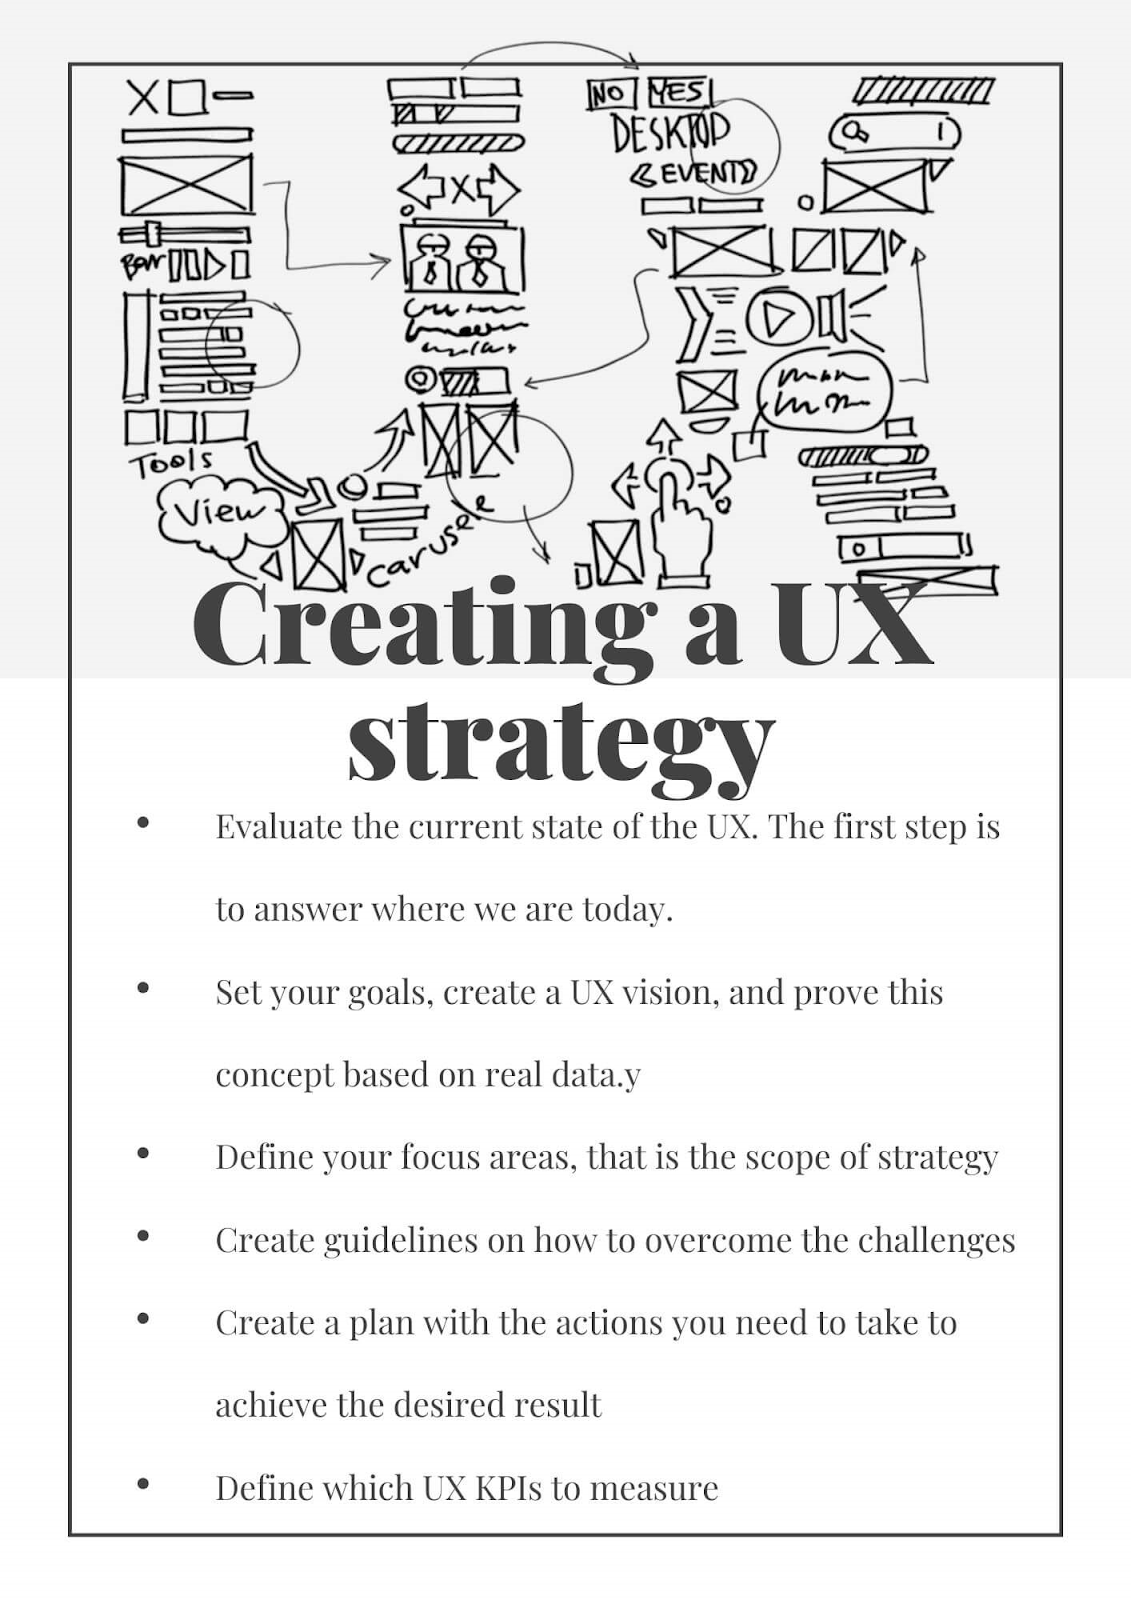 Steps to create a UX strategy